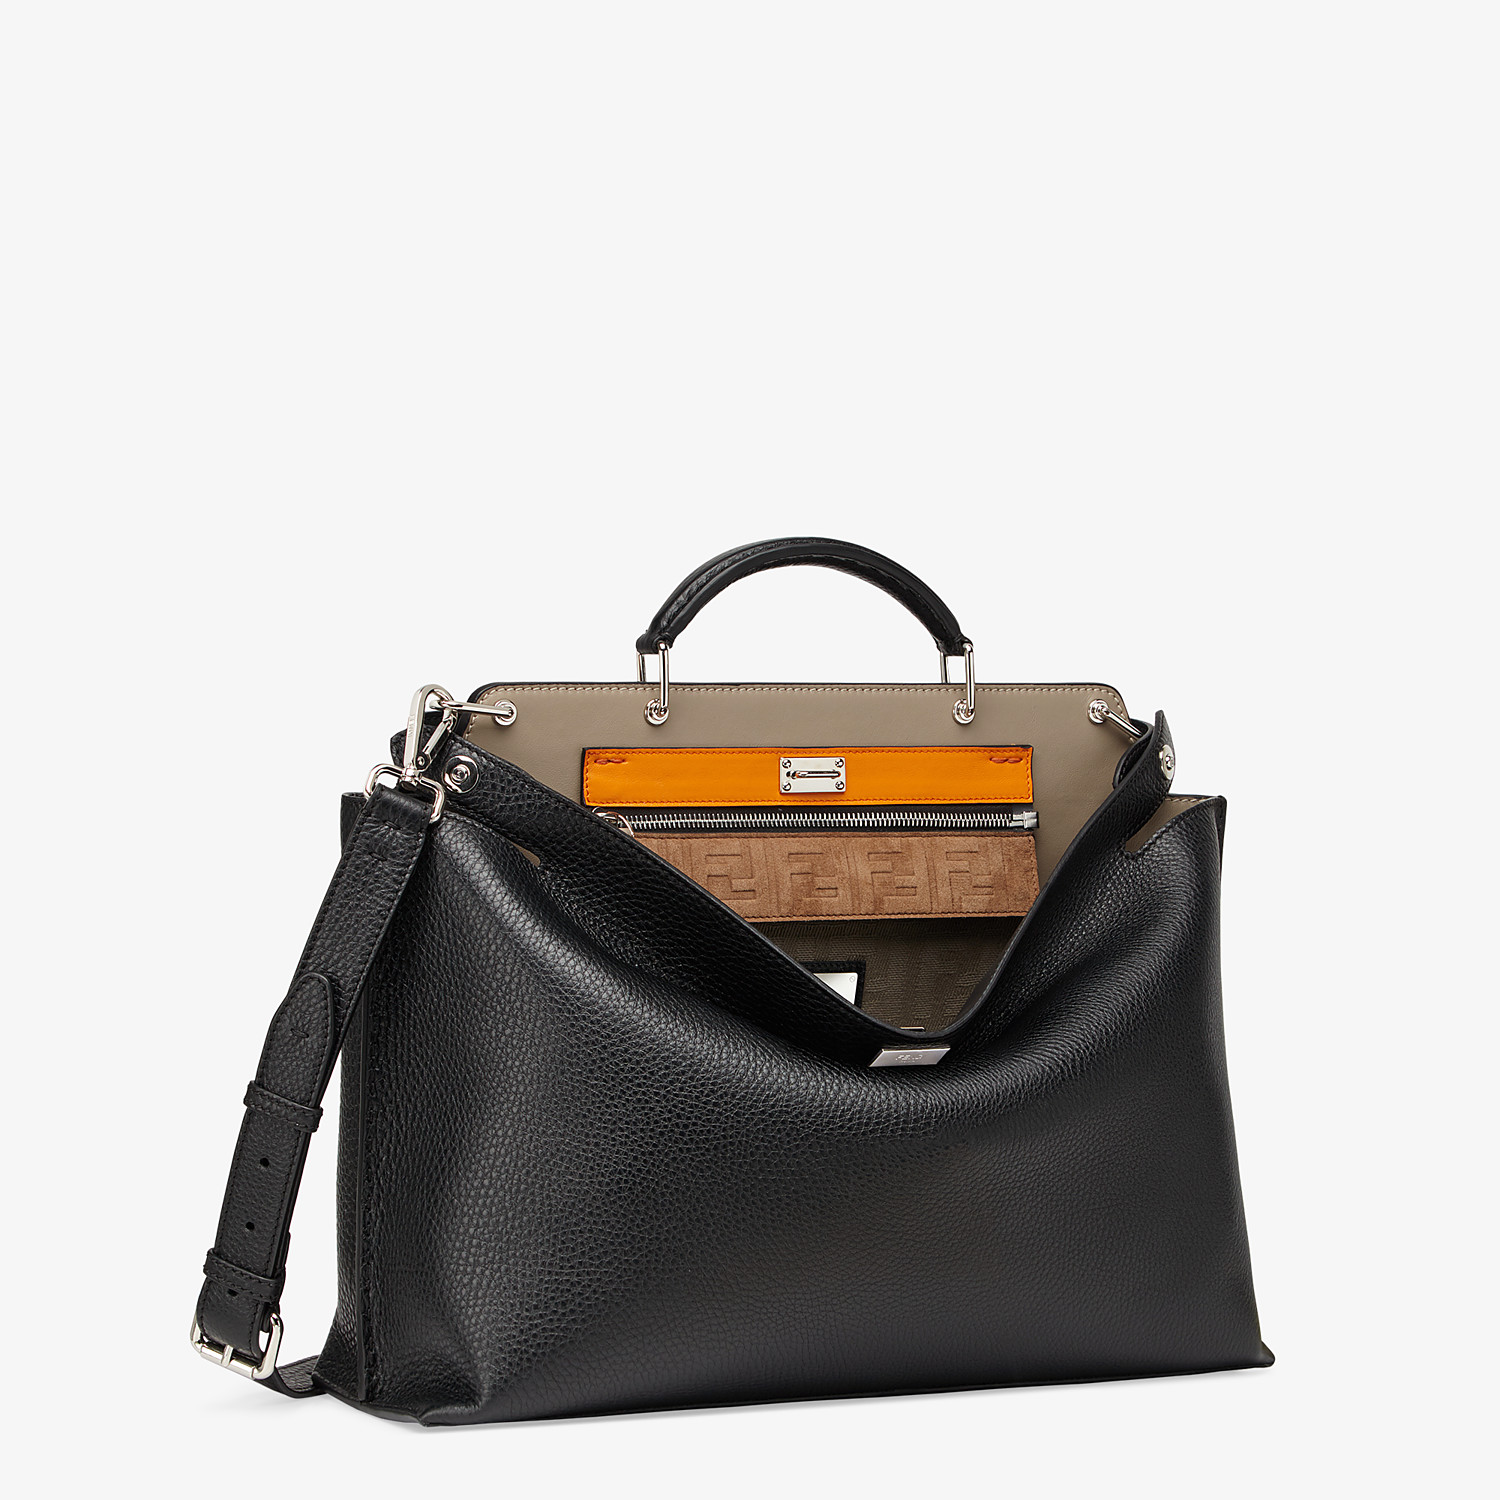 FENDI PEEKABOO ICONIC ESSENTIAL - Black leather bag - view 3 detail